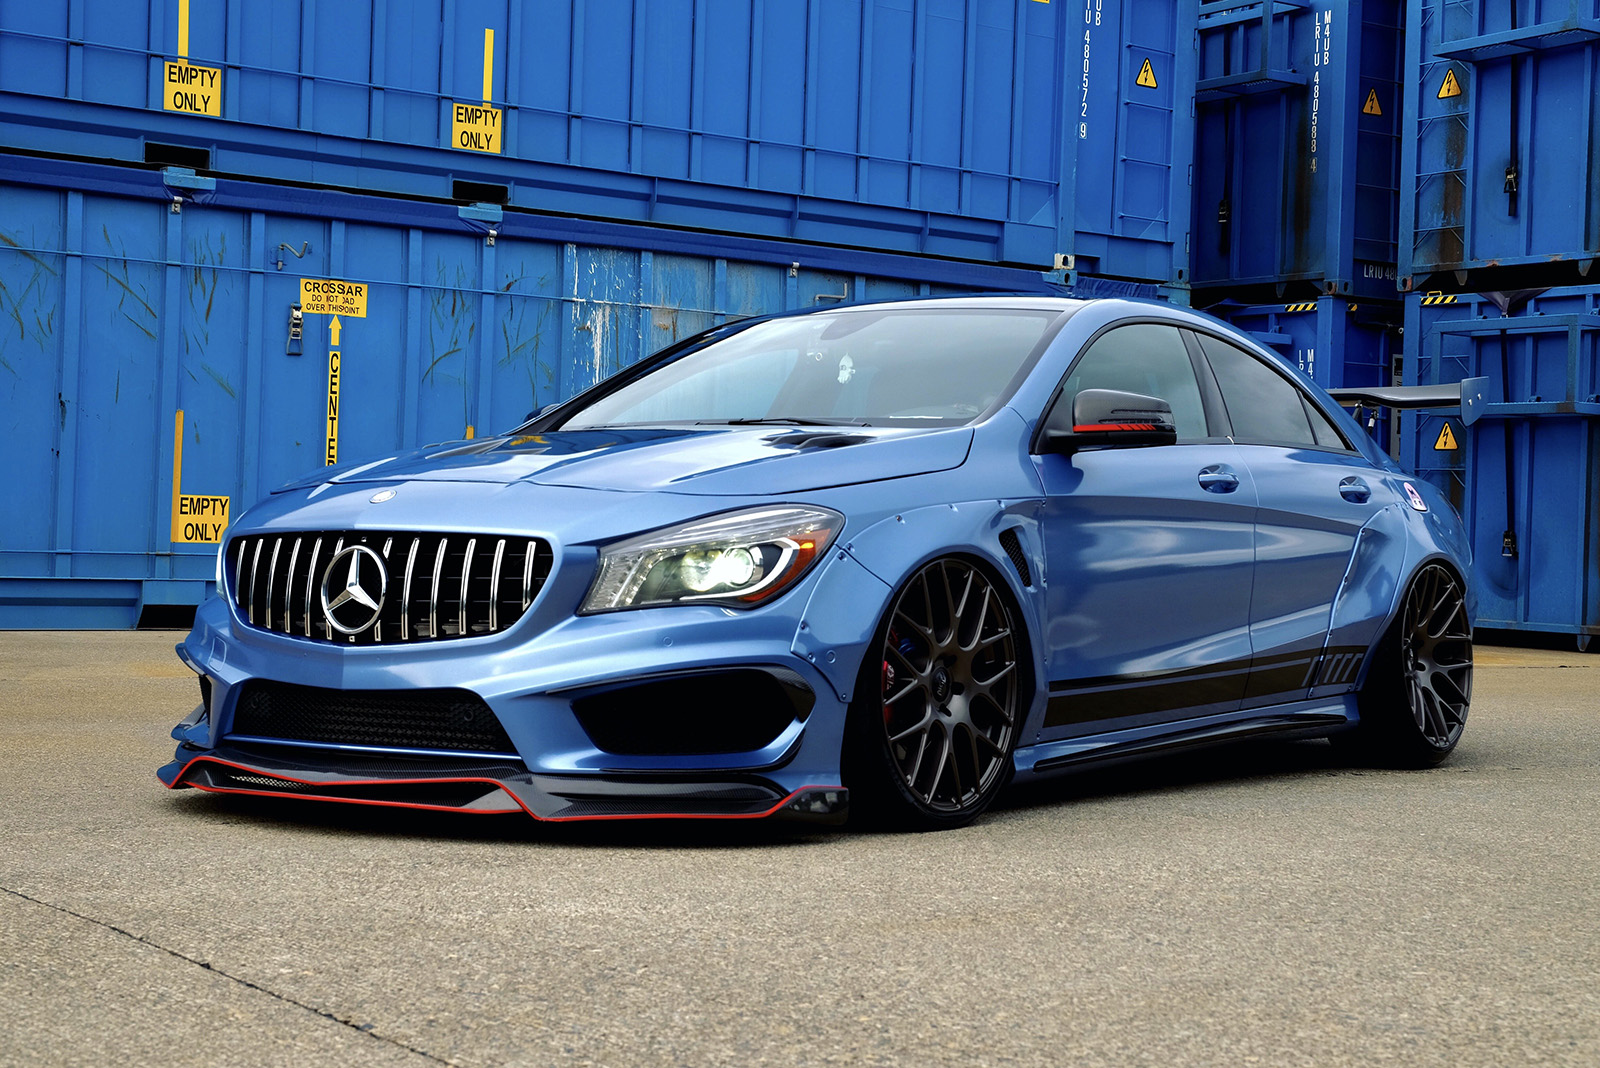 01 Will Cai 2015 Mercedes Benz CLA250 pasmag tuner battlegrounds